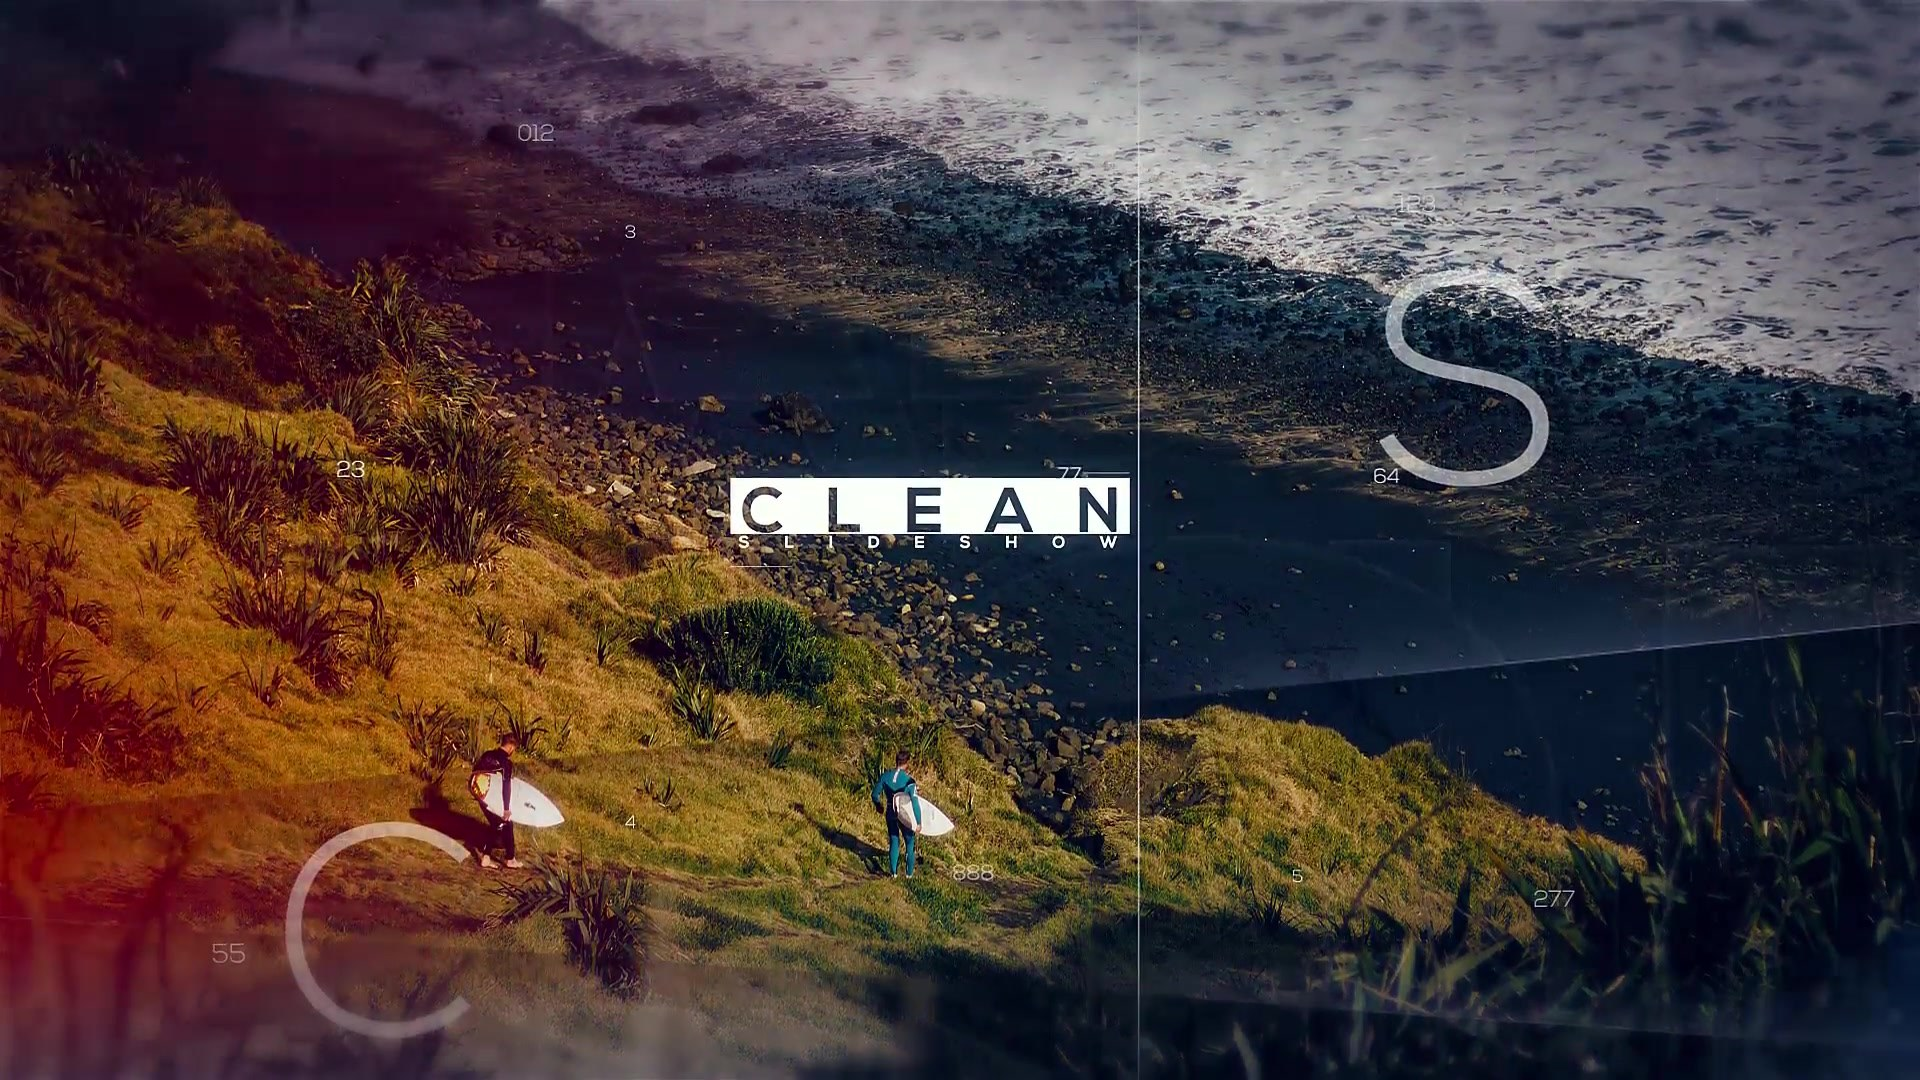 Clean Slideshow - Download Videohive 19809592